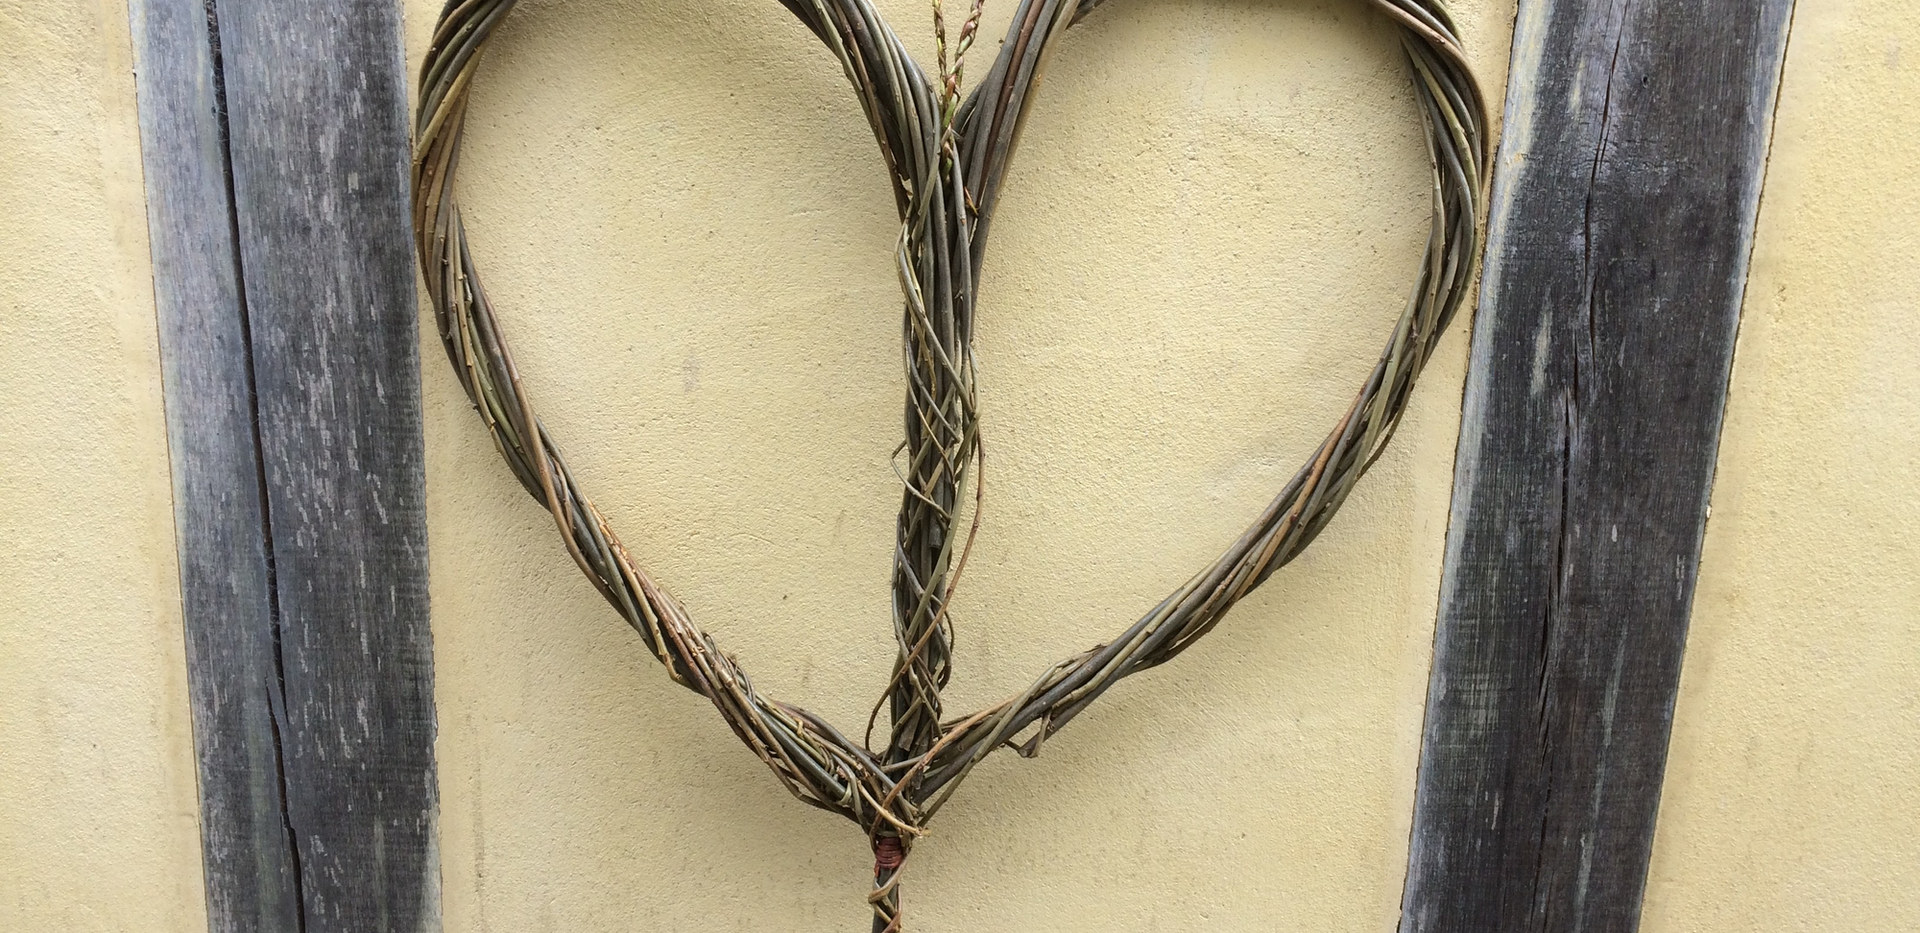 Willow heart willow weaving shropshire T